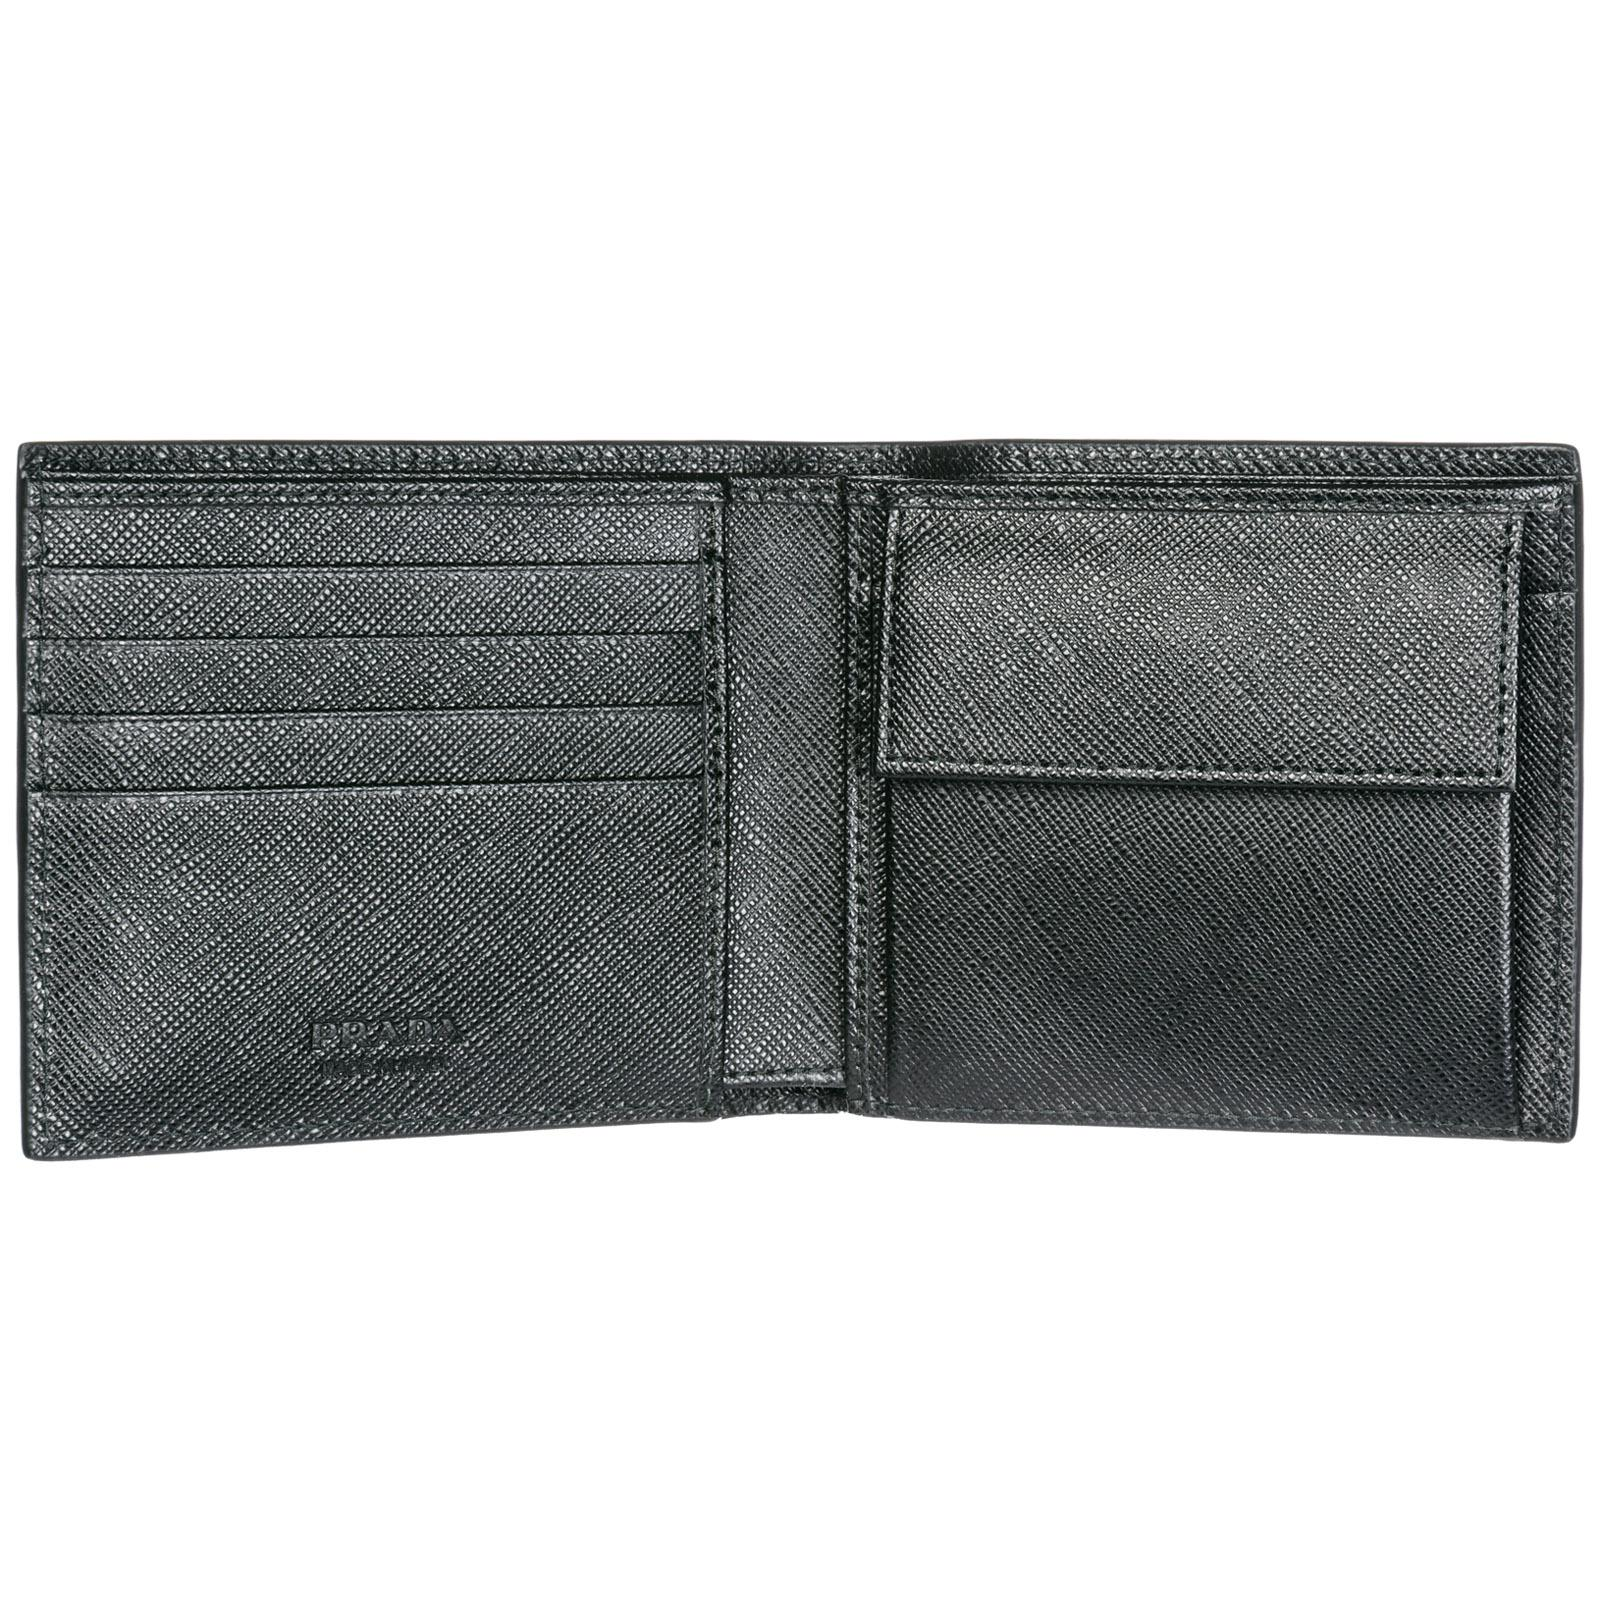 c8643cce5508 Prada - Black Wallet Genuine Leather Coin Case Holder Purse Card Bifold for  Men - Lyst. View fullscreen